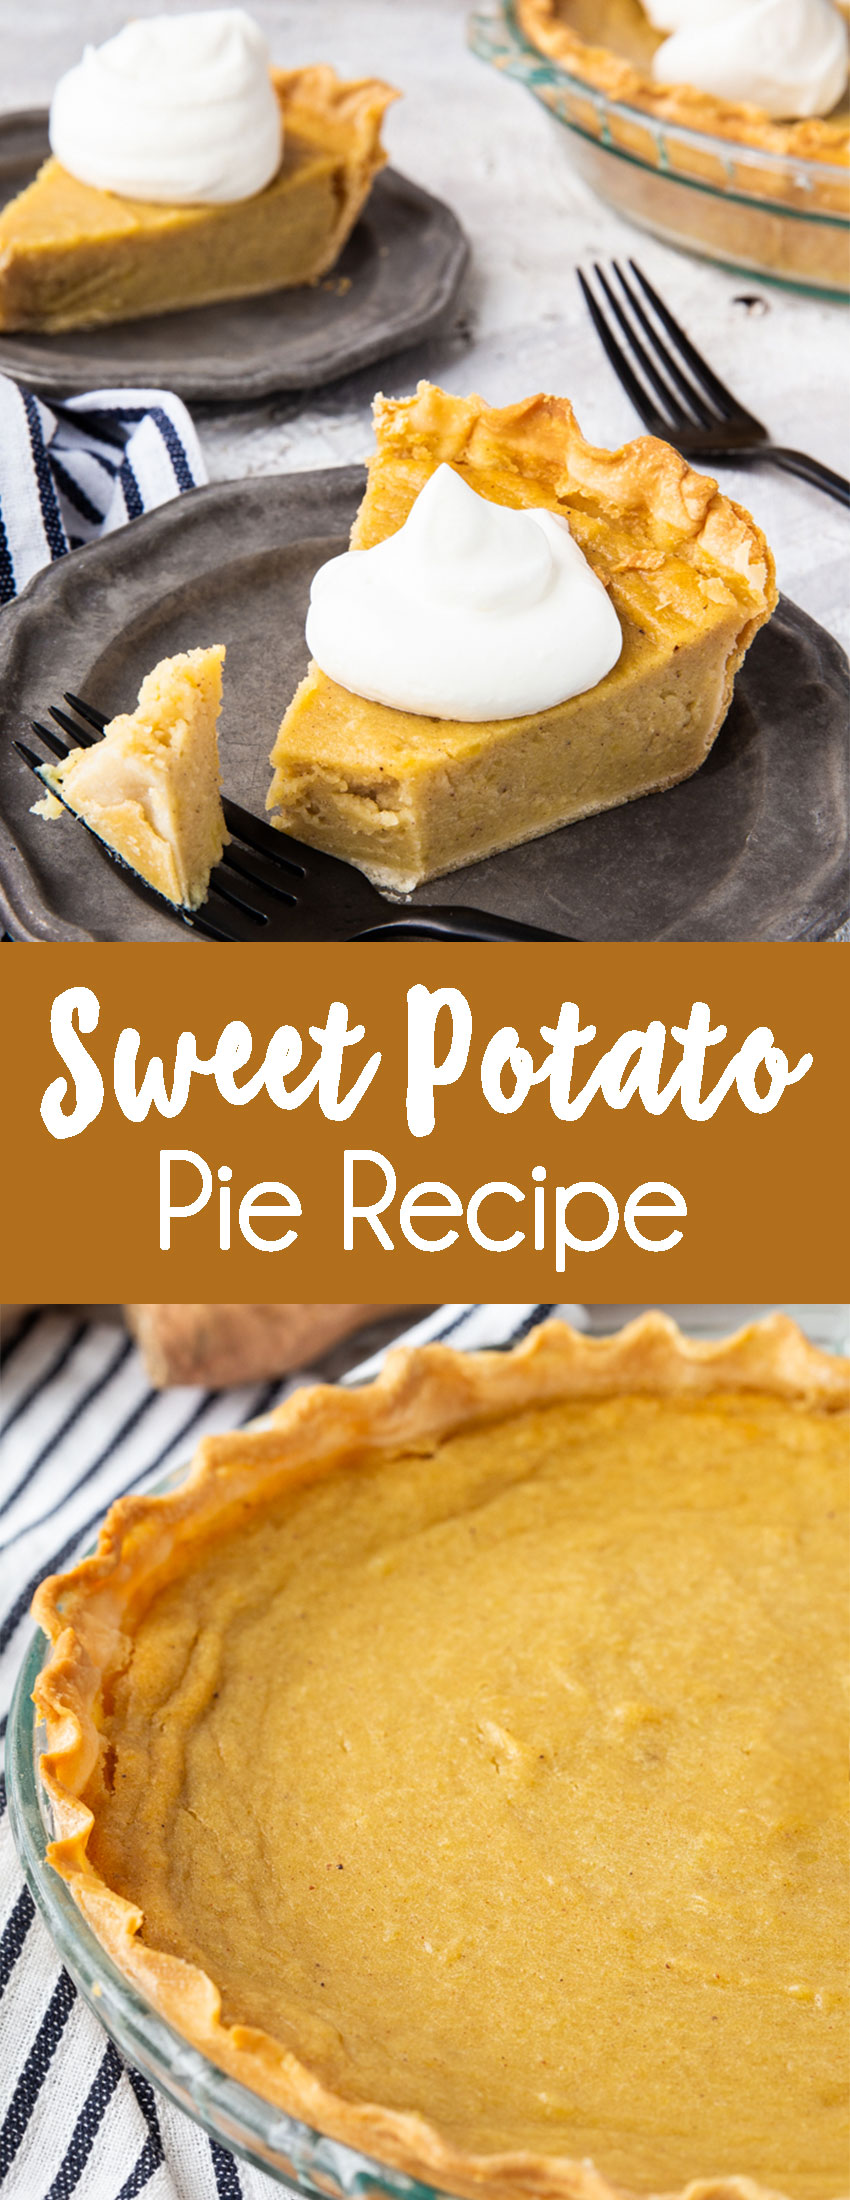 Sweet potato pie, a classic pie that is slightly spiced, cuts beautifully, and has a silky smooth filling.